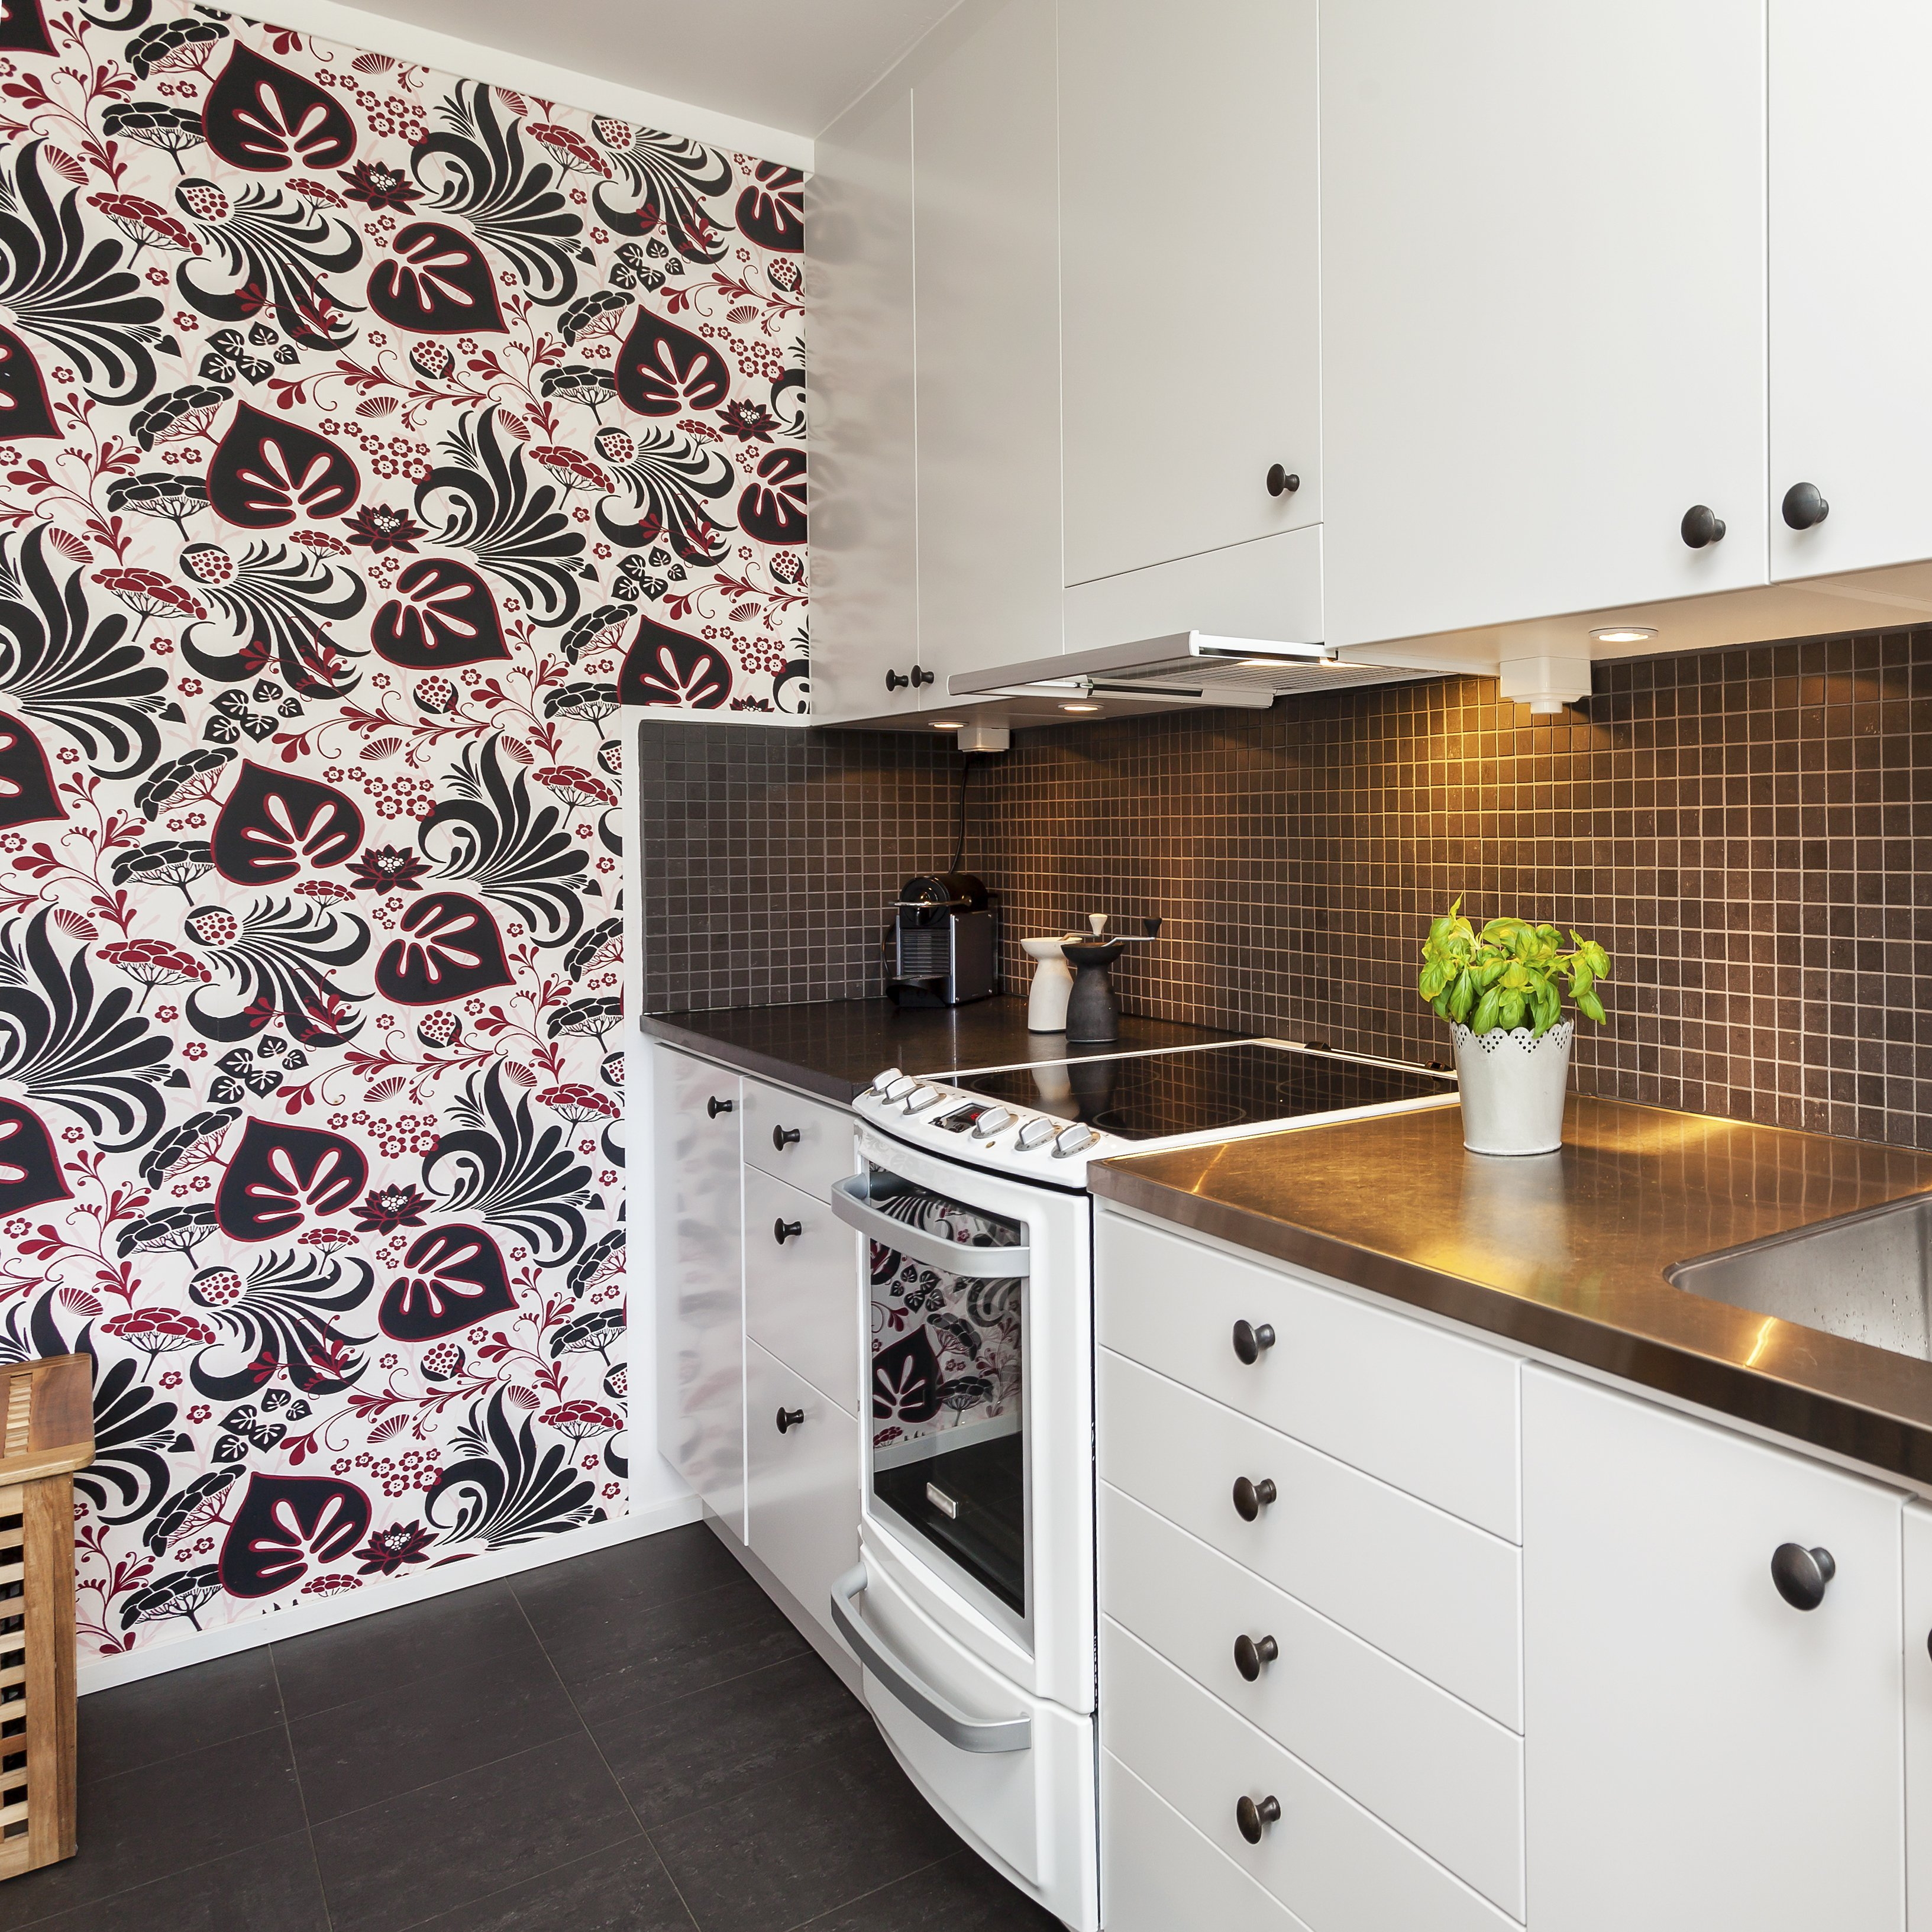 A photo of a kitchen interior with modern wallpaper. | Photo: Shutterstock